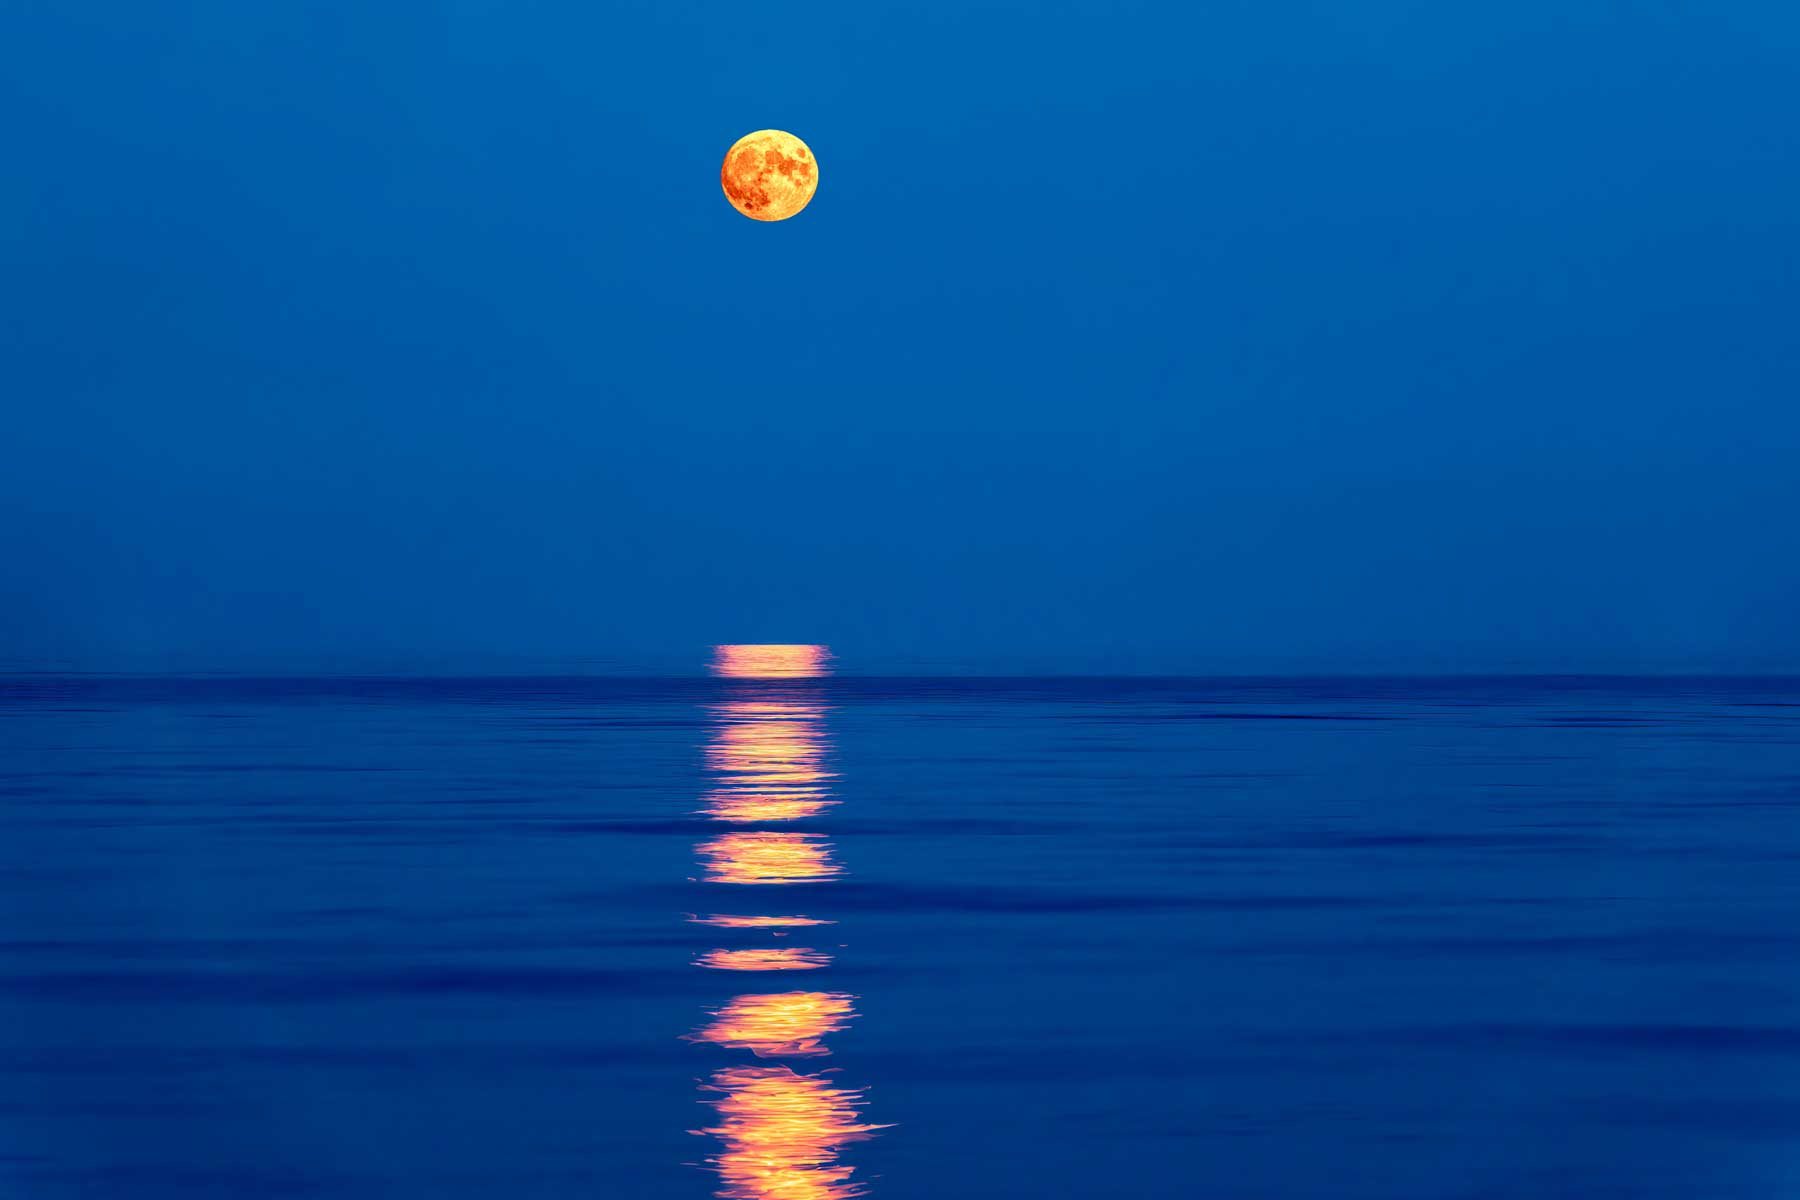 Super full blood moon and moon light over the sea